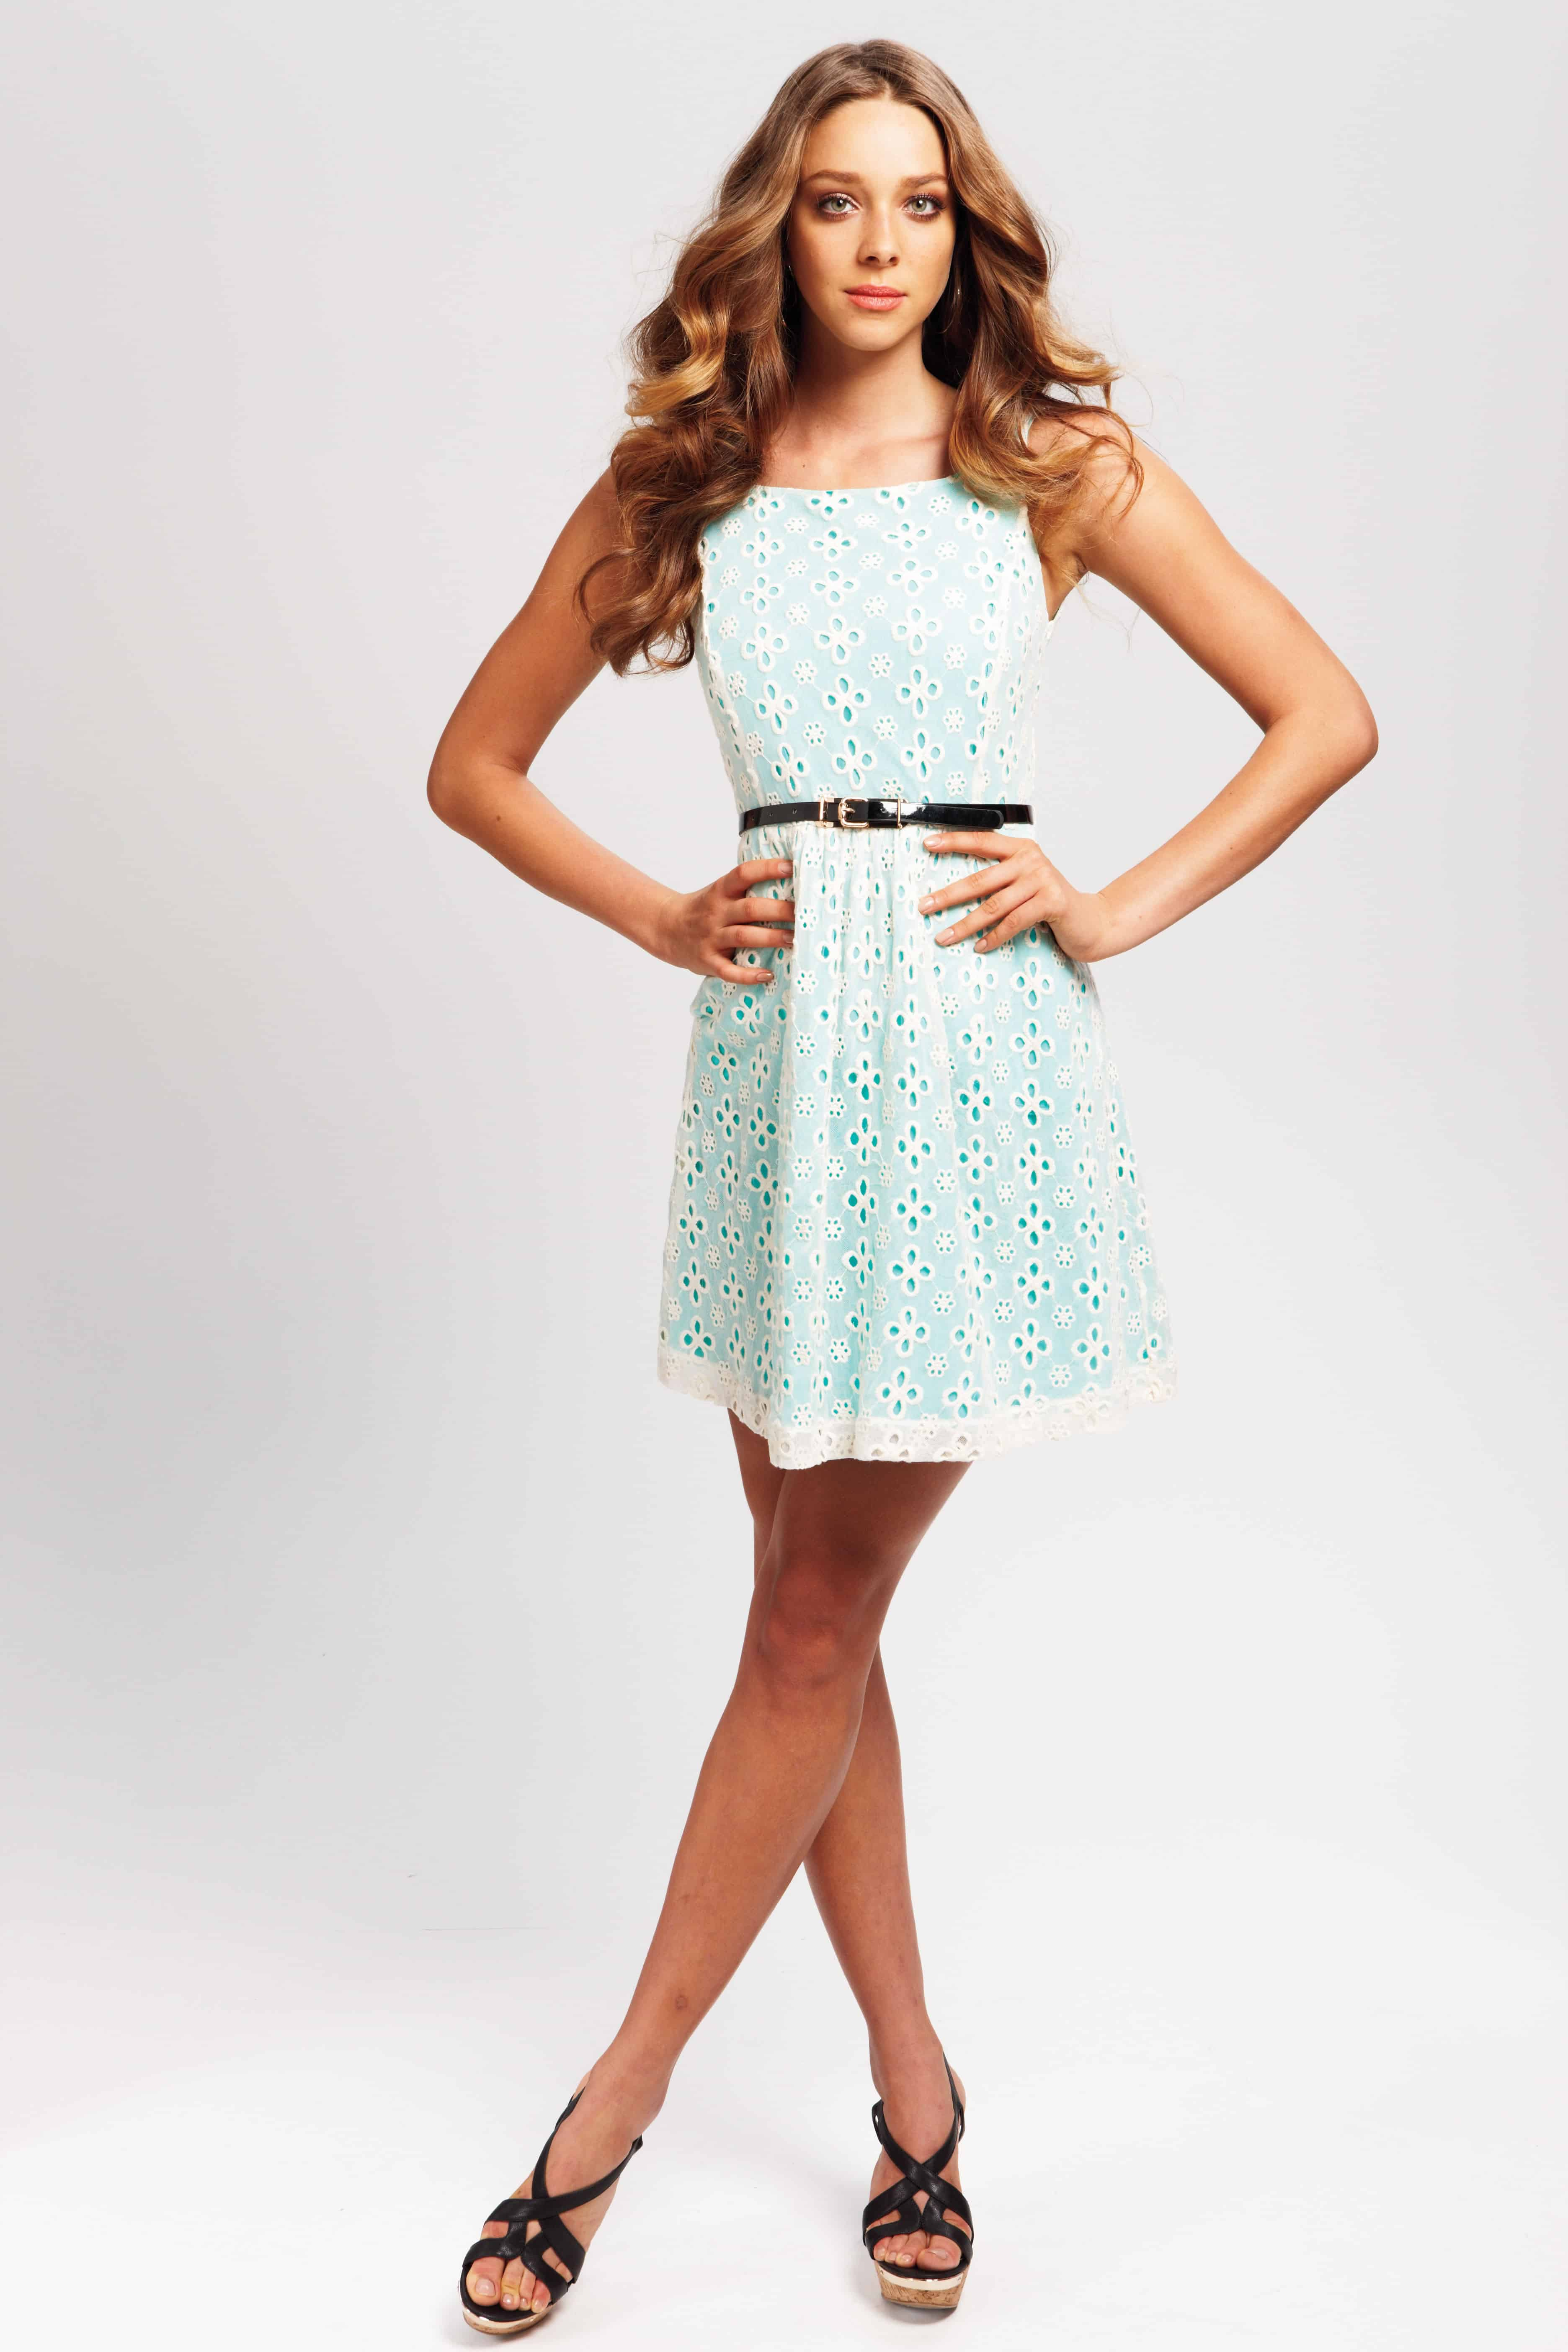 Kohls_Jennifer Lopez-polly cotton-floral-print-mesh-dress